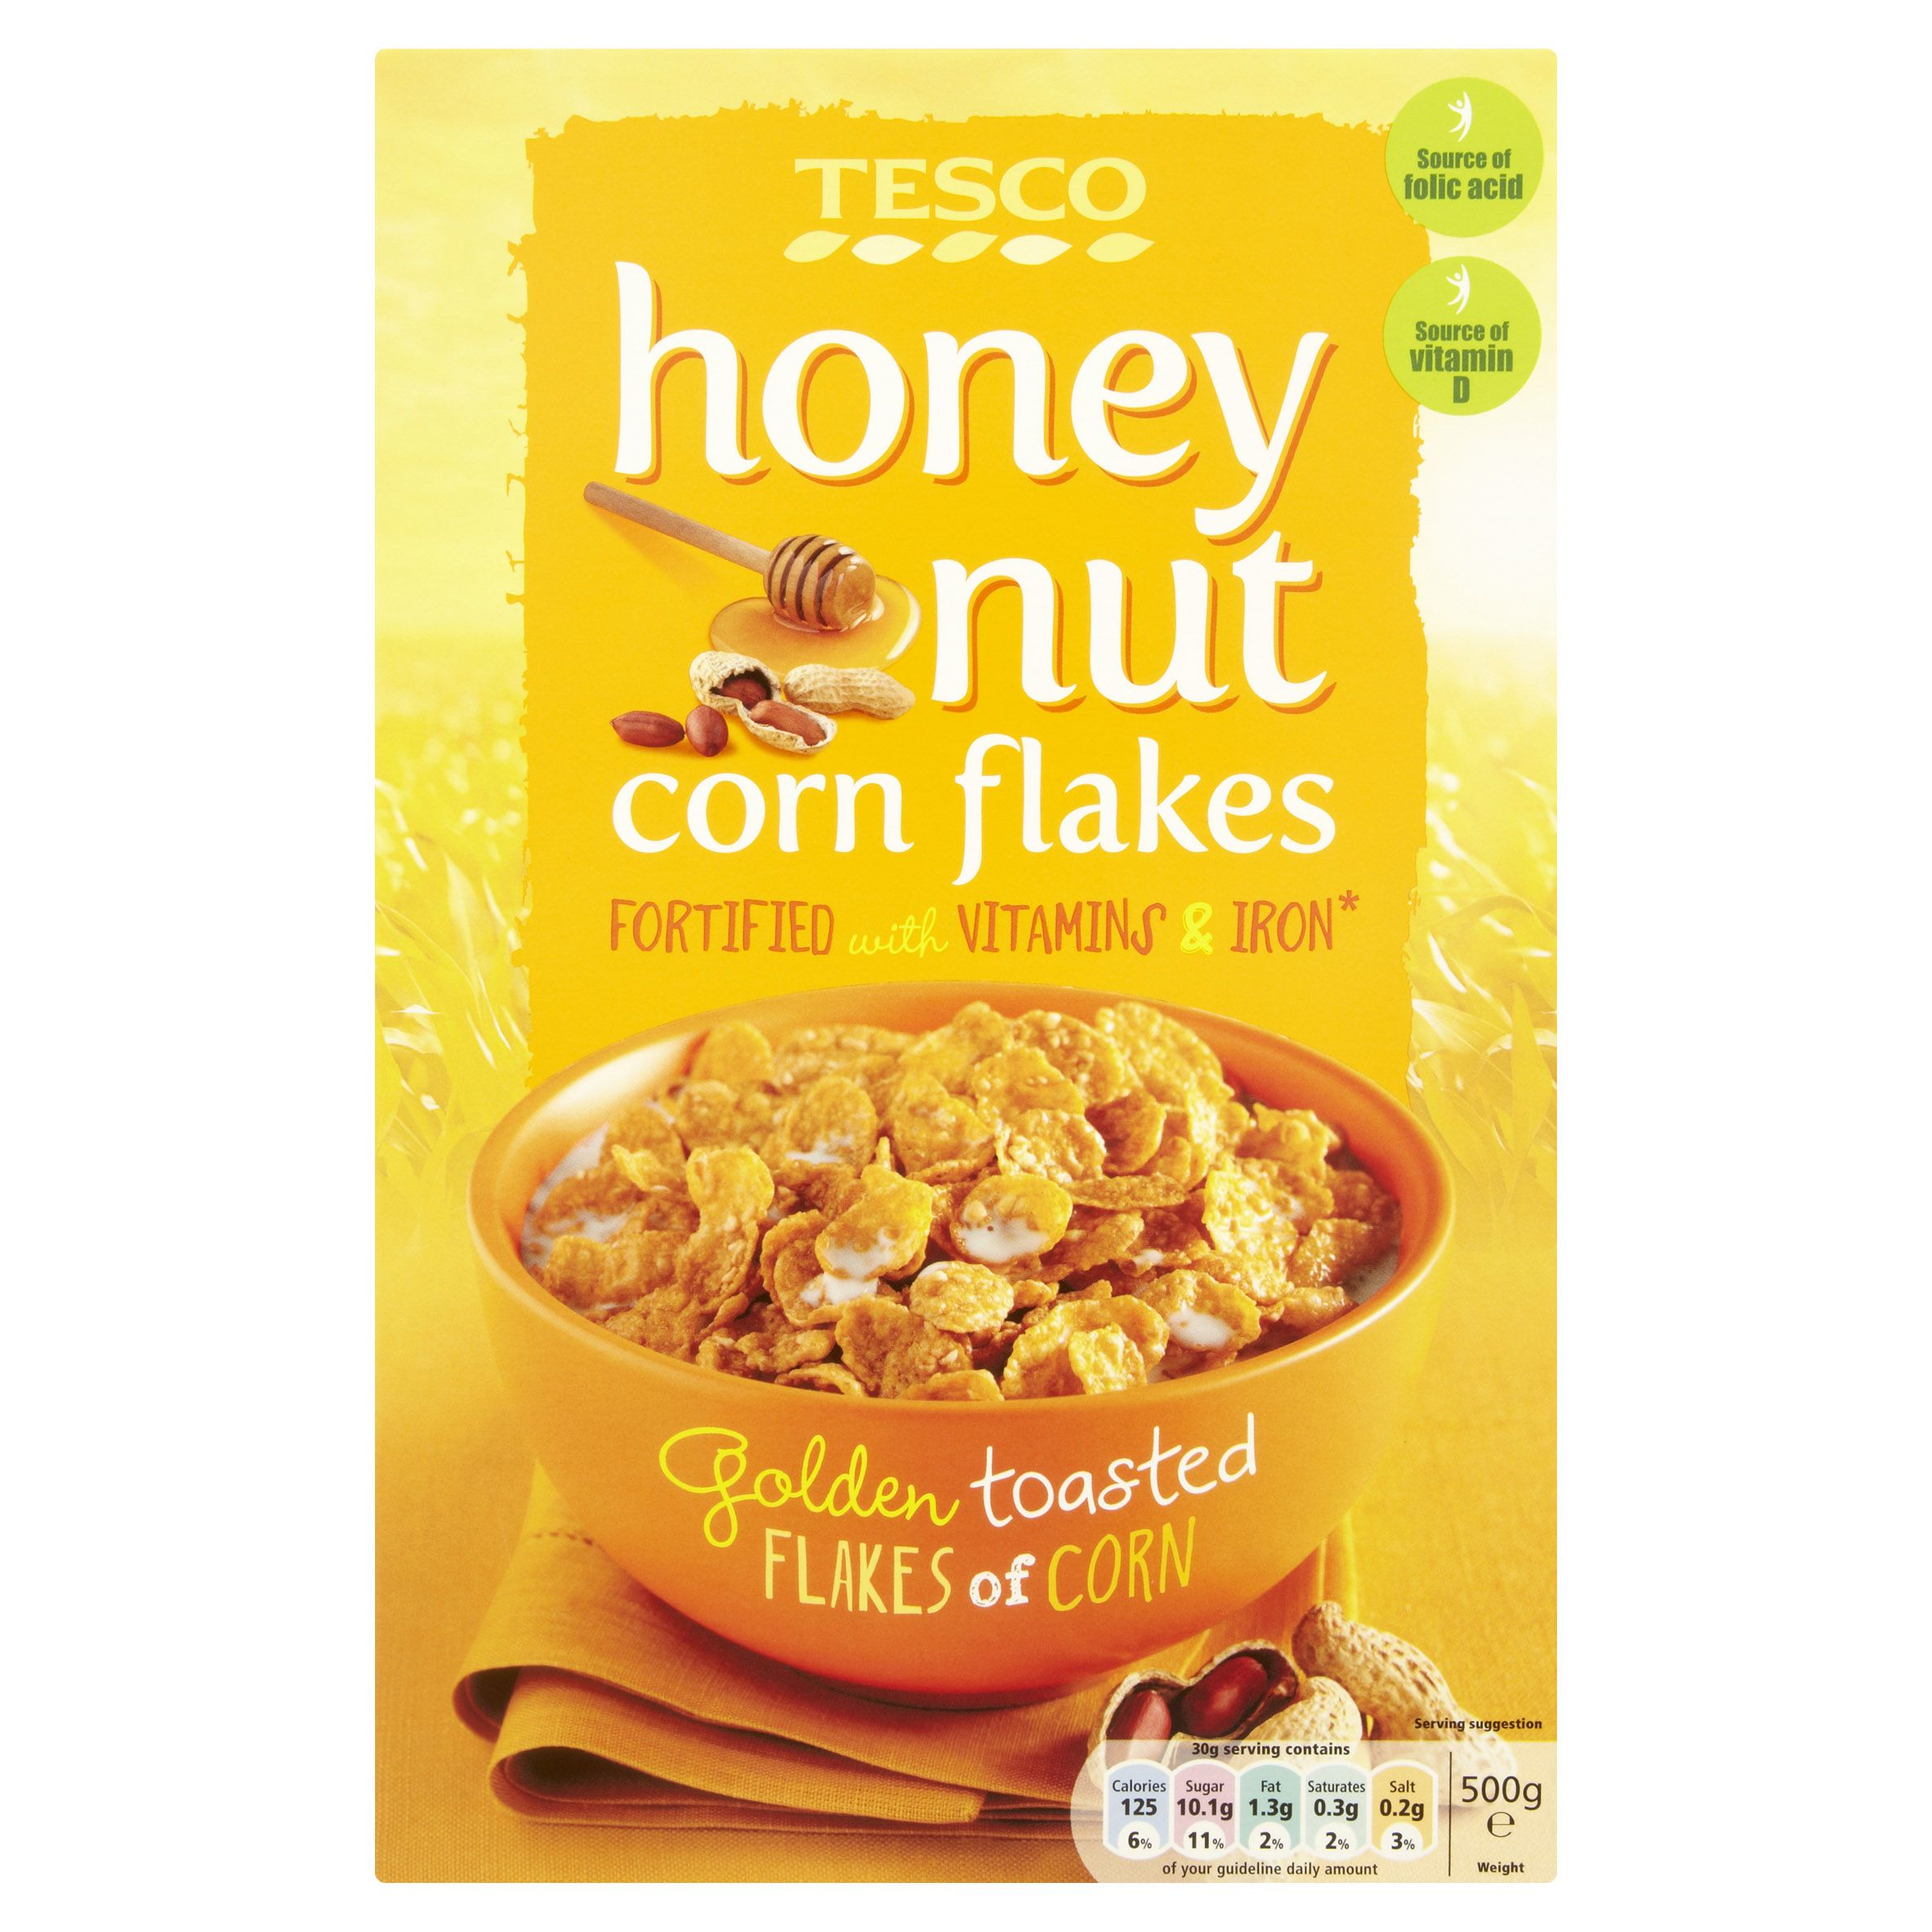 Tesco Honey Nut Corn Flakes Golden Toasted Flakes Of Corn